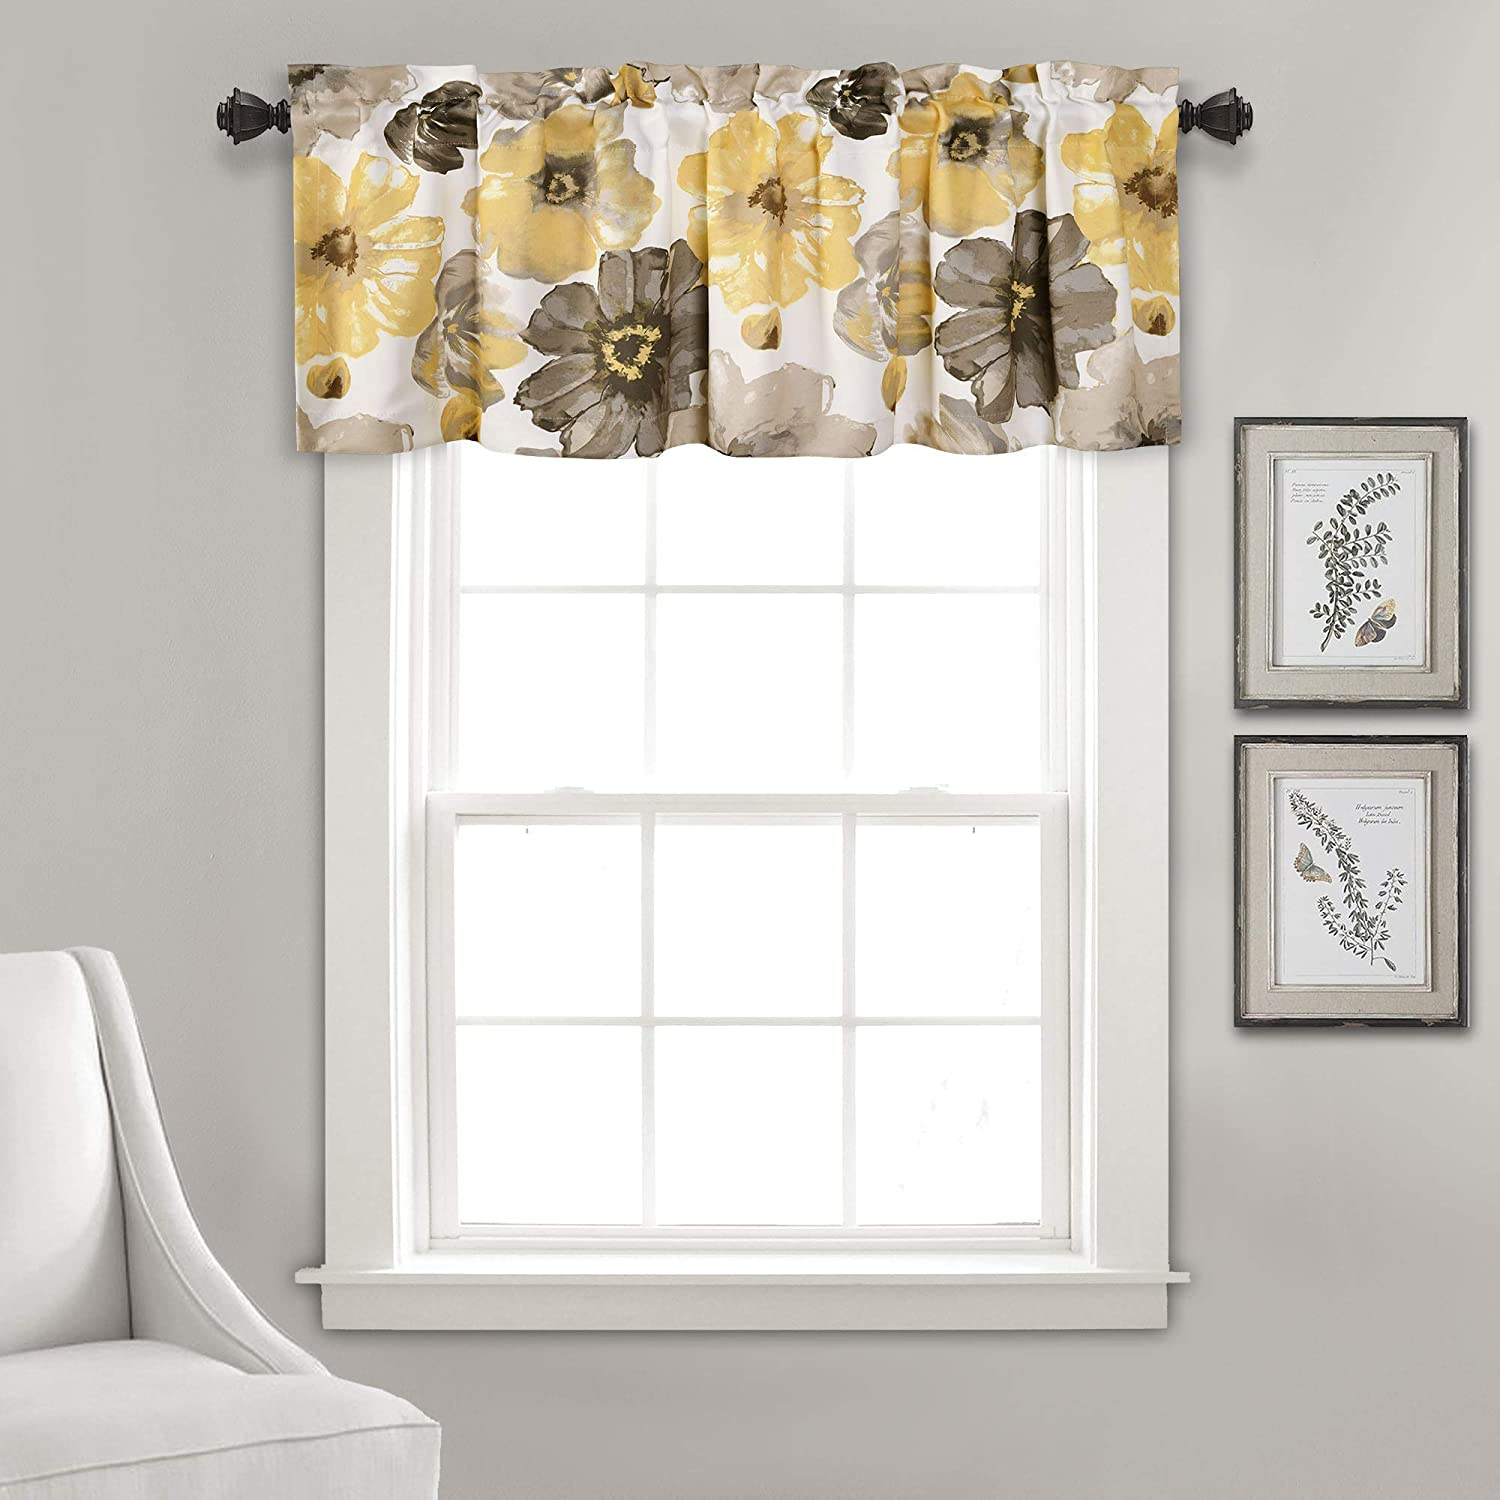 "Lush Decor Leah Floral Window Curtain Valance, 18"" x 52"", Yellow and Gray"